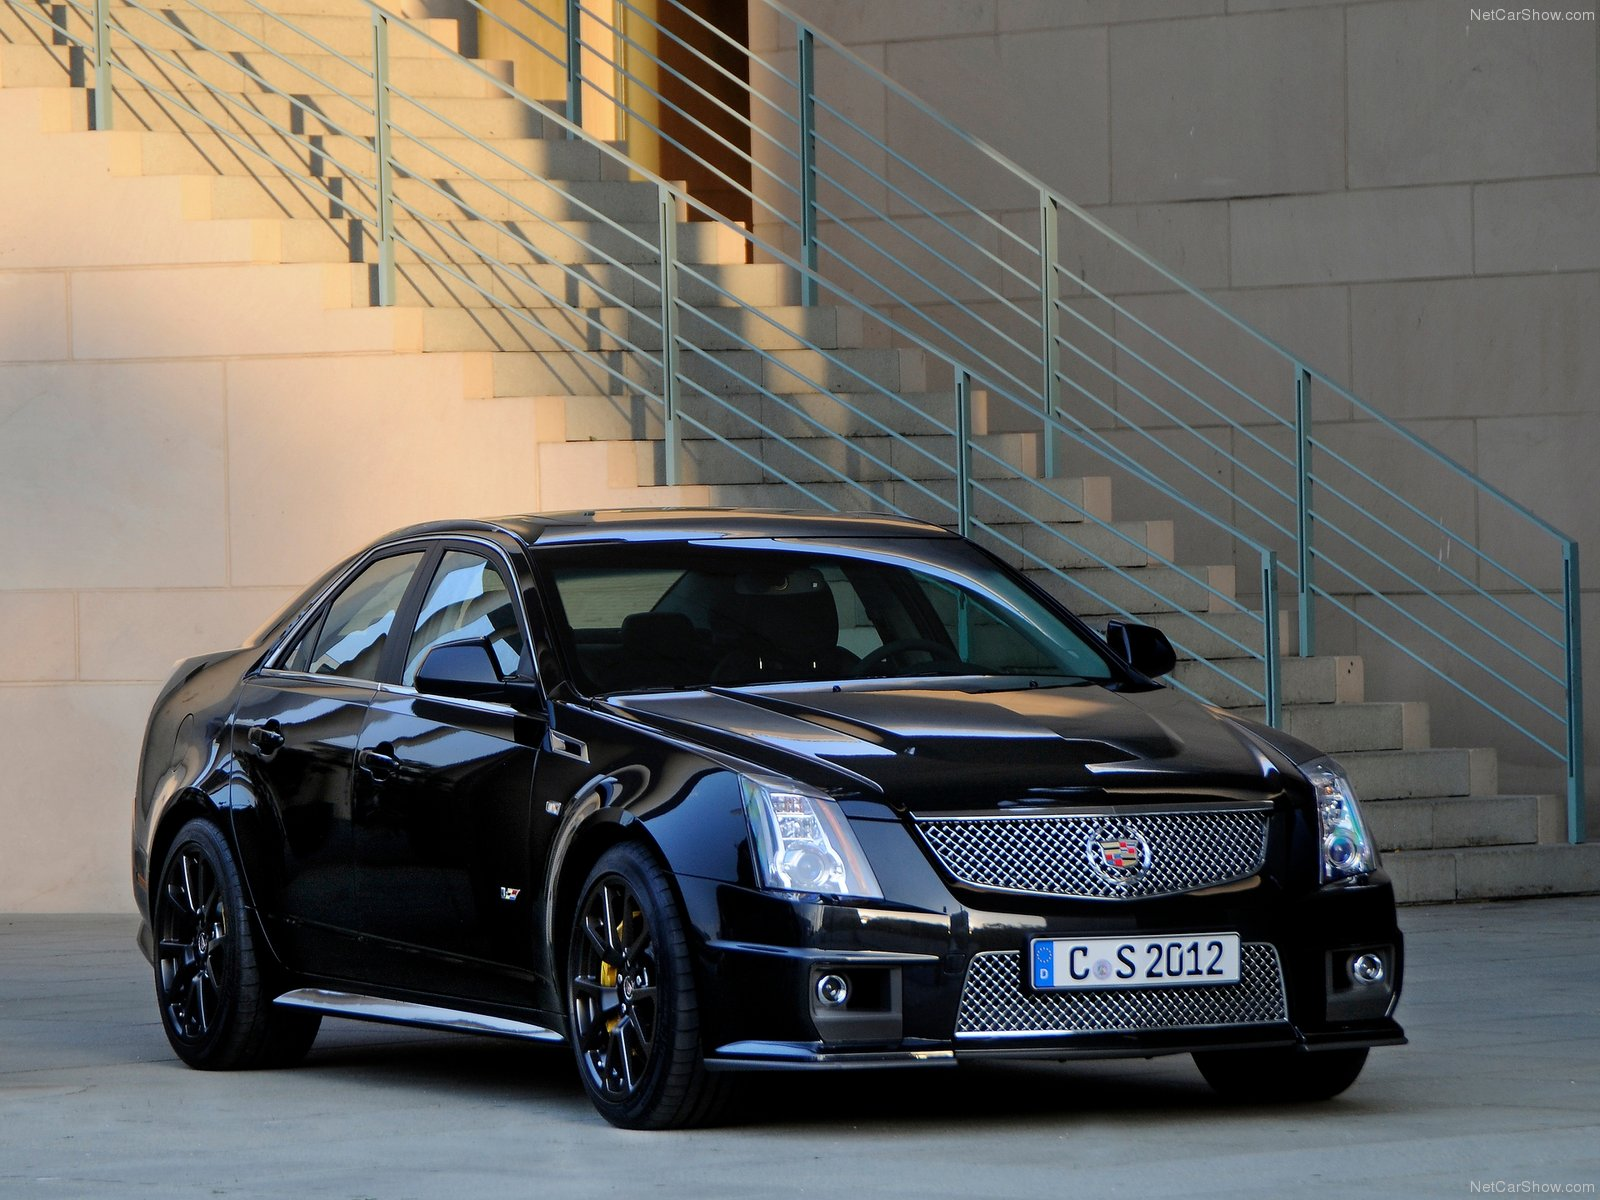 Tuning Cadillac Cts V Sedan 2004 Online Accessories And